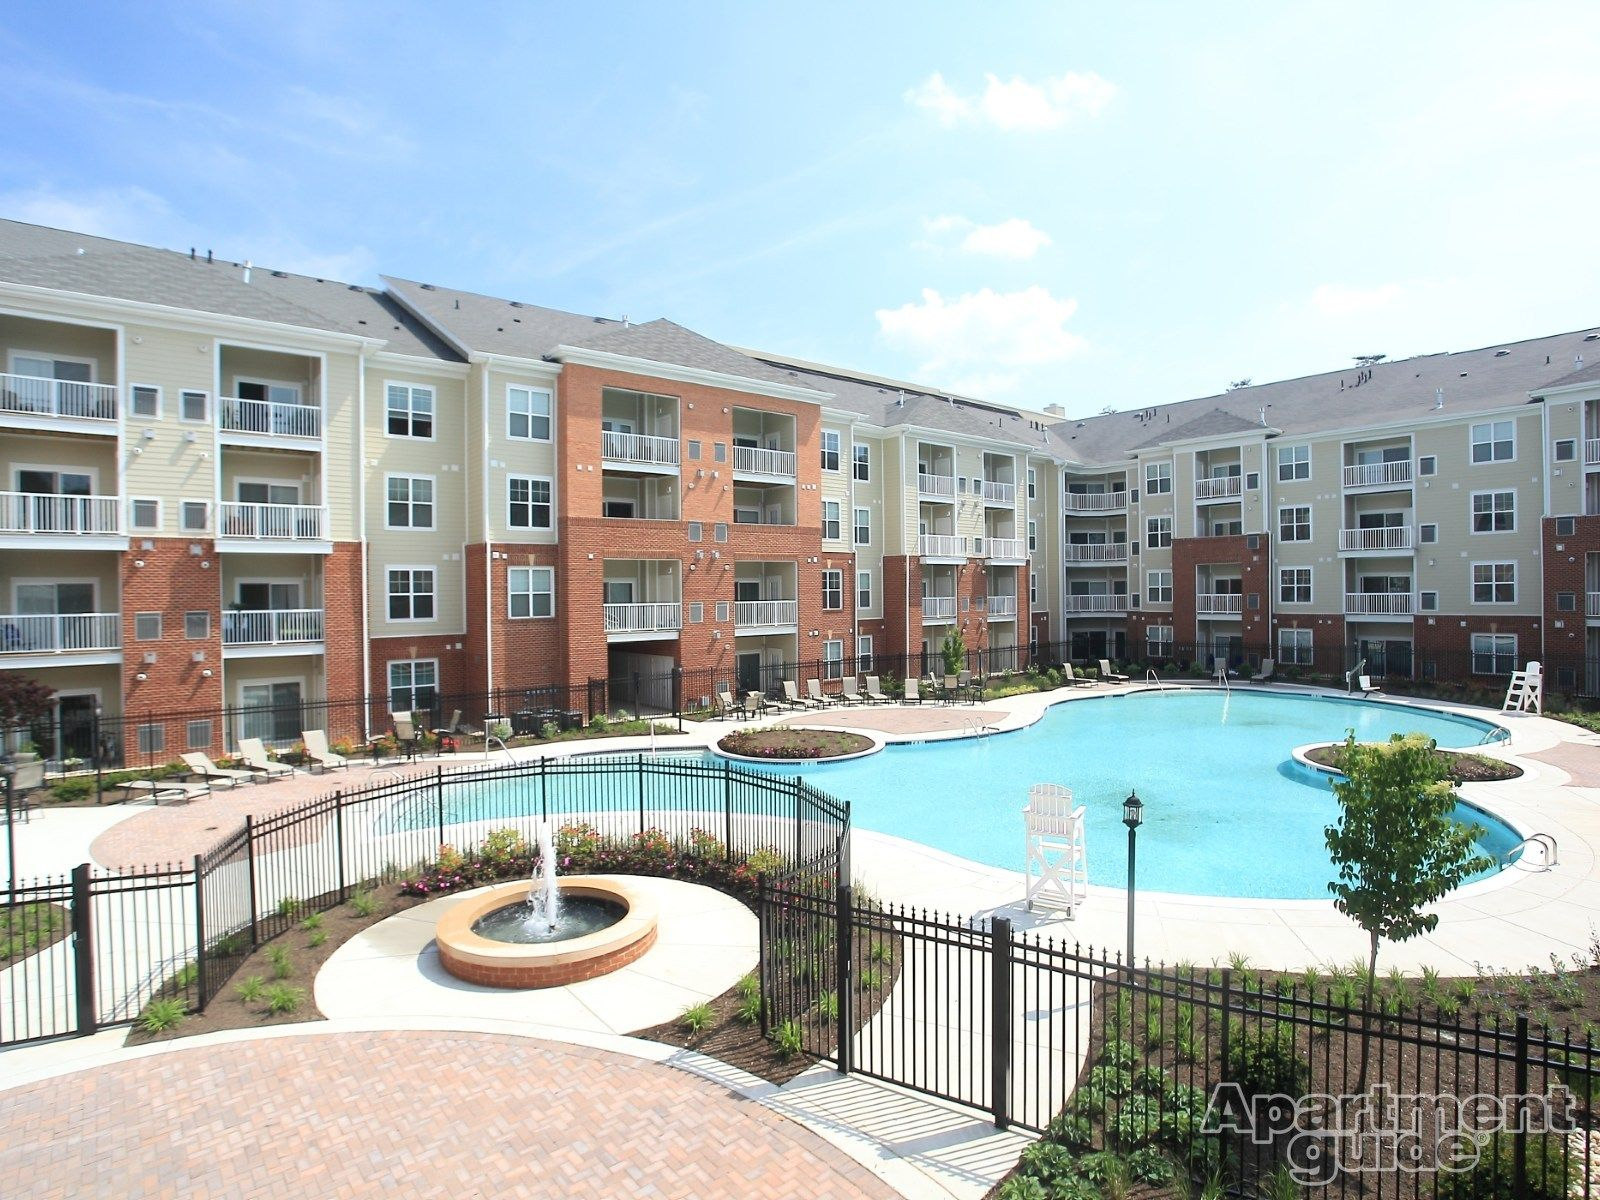 Apartment Of The Week This Green Community Near Baltimore Will Make You Feel At Home Everything Is Under One Amazing Apartments Serenity Apartment Listings